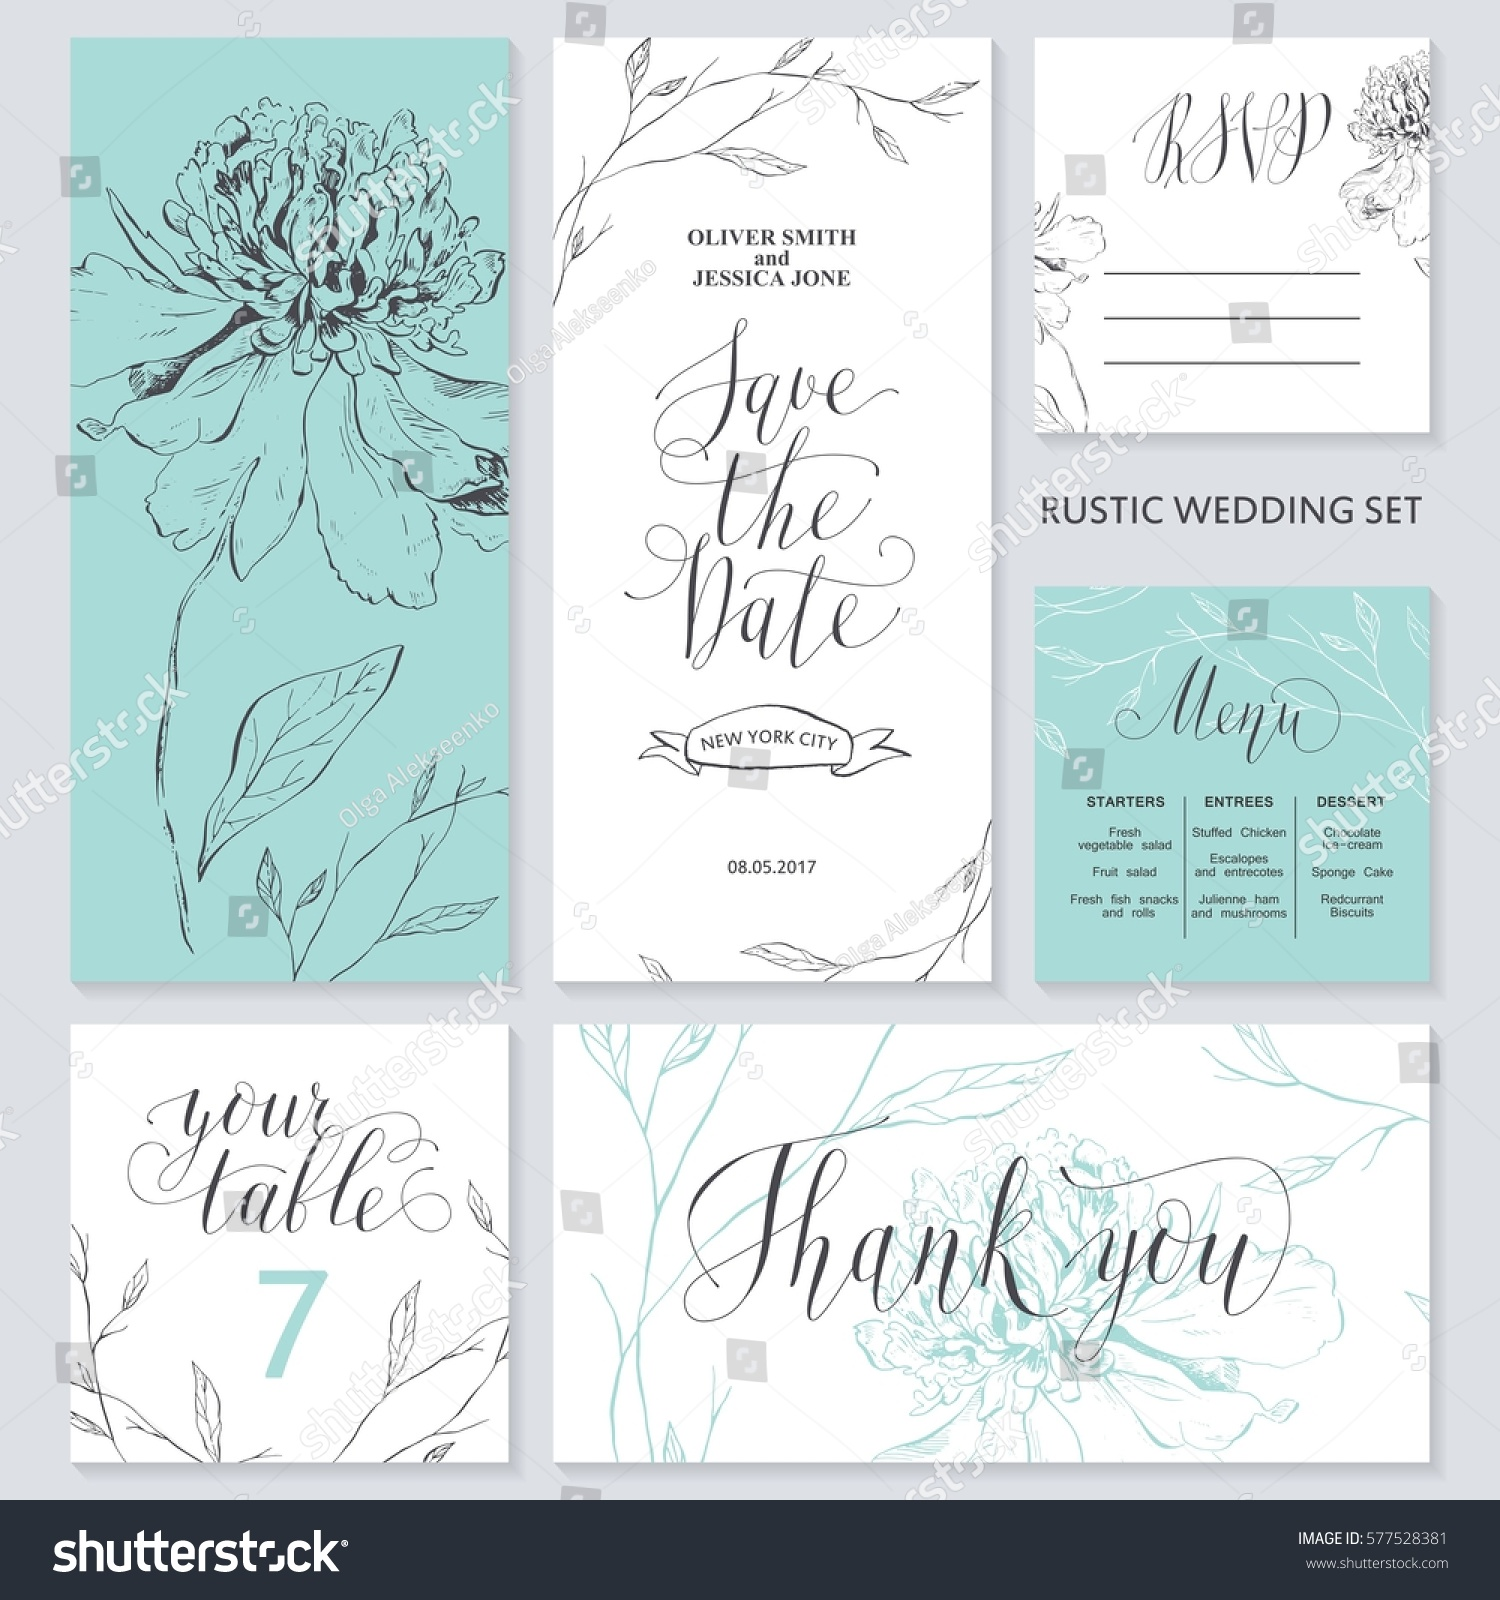 Template Rustic Wedding Invitations Save Date Stock Vector